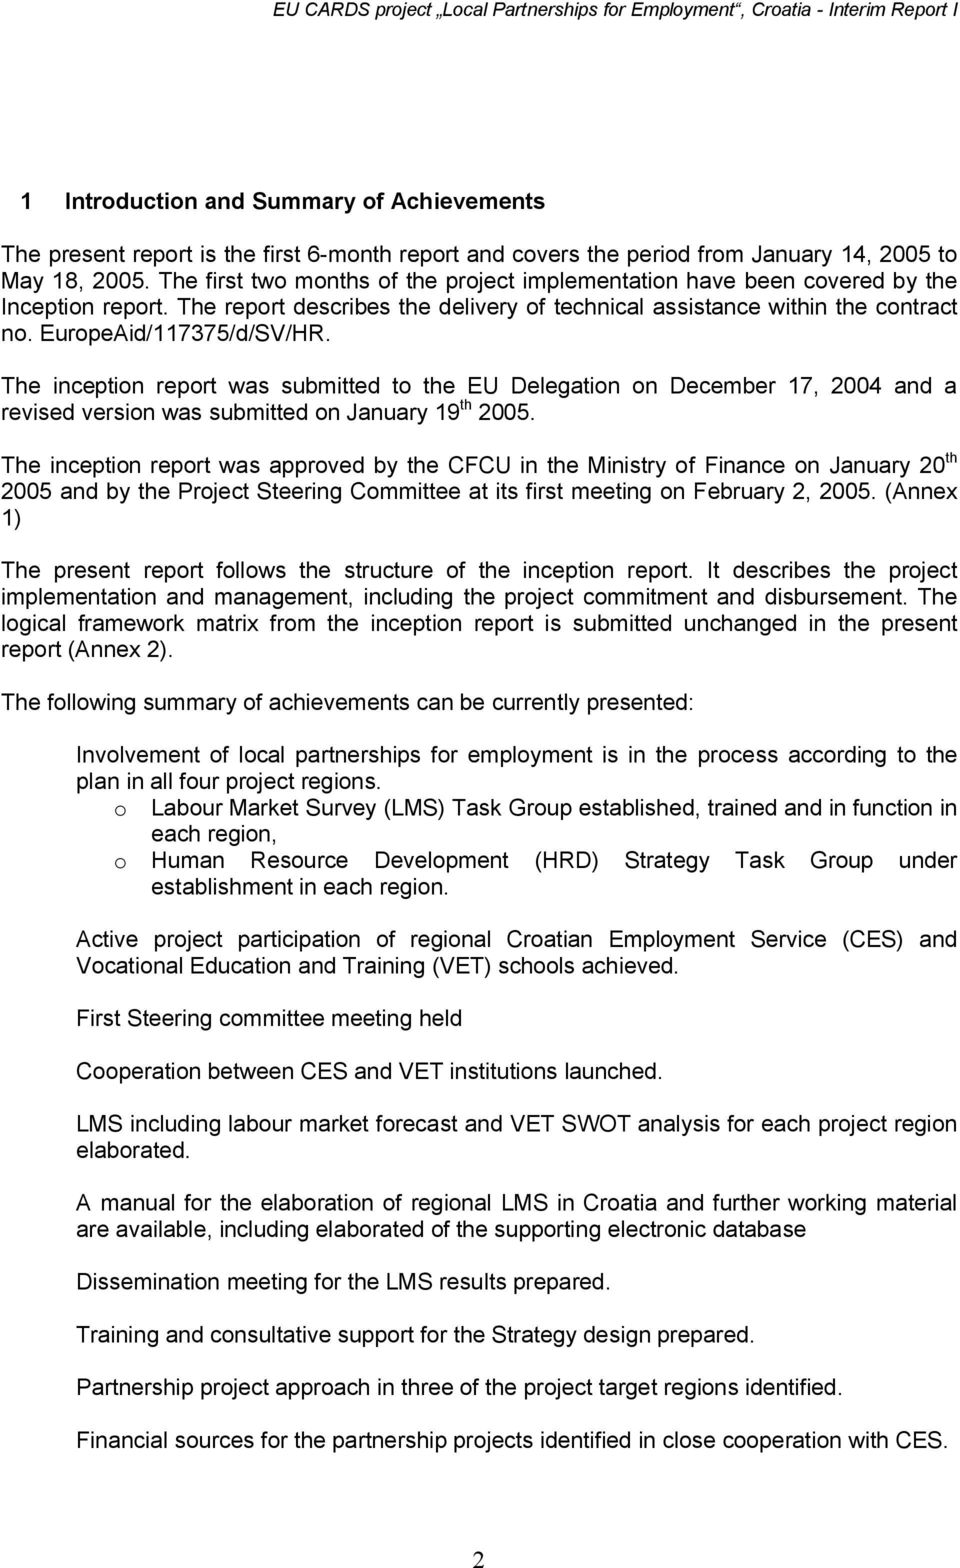 EuropeAid/117375/d/SV/HR. The inception report was submitted to the EU Delegation on December 17, 2004 and a revised version was submitted on January 19 th 2005.